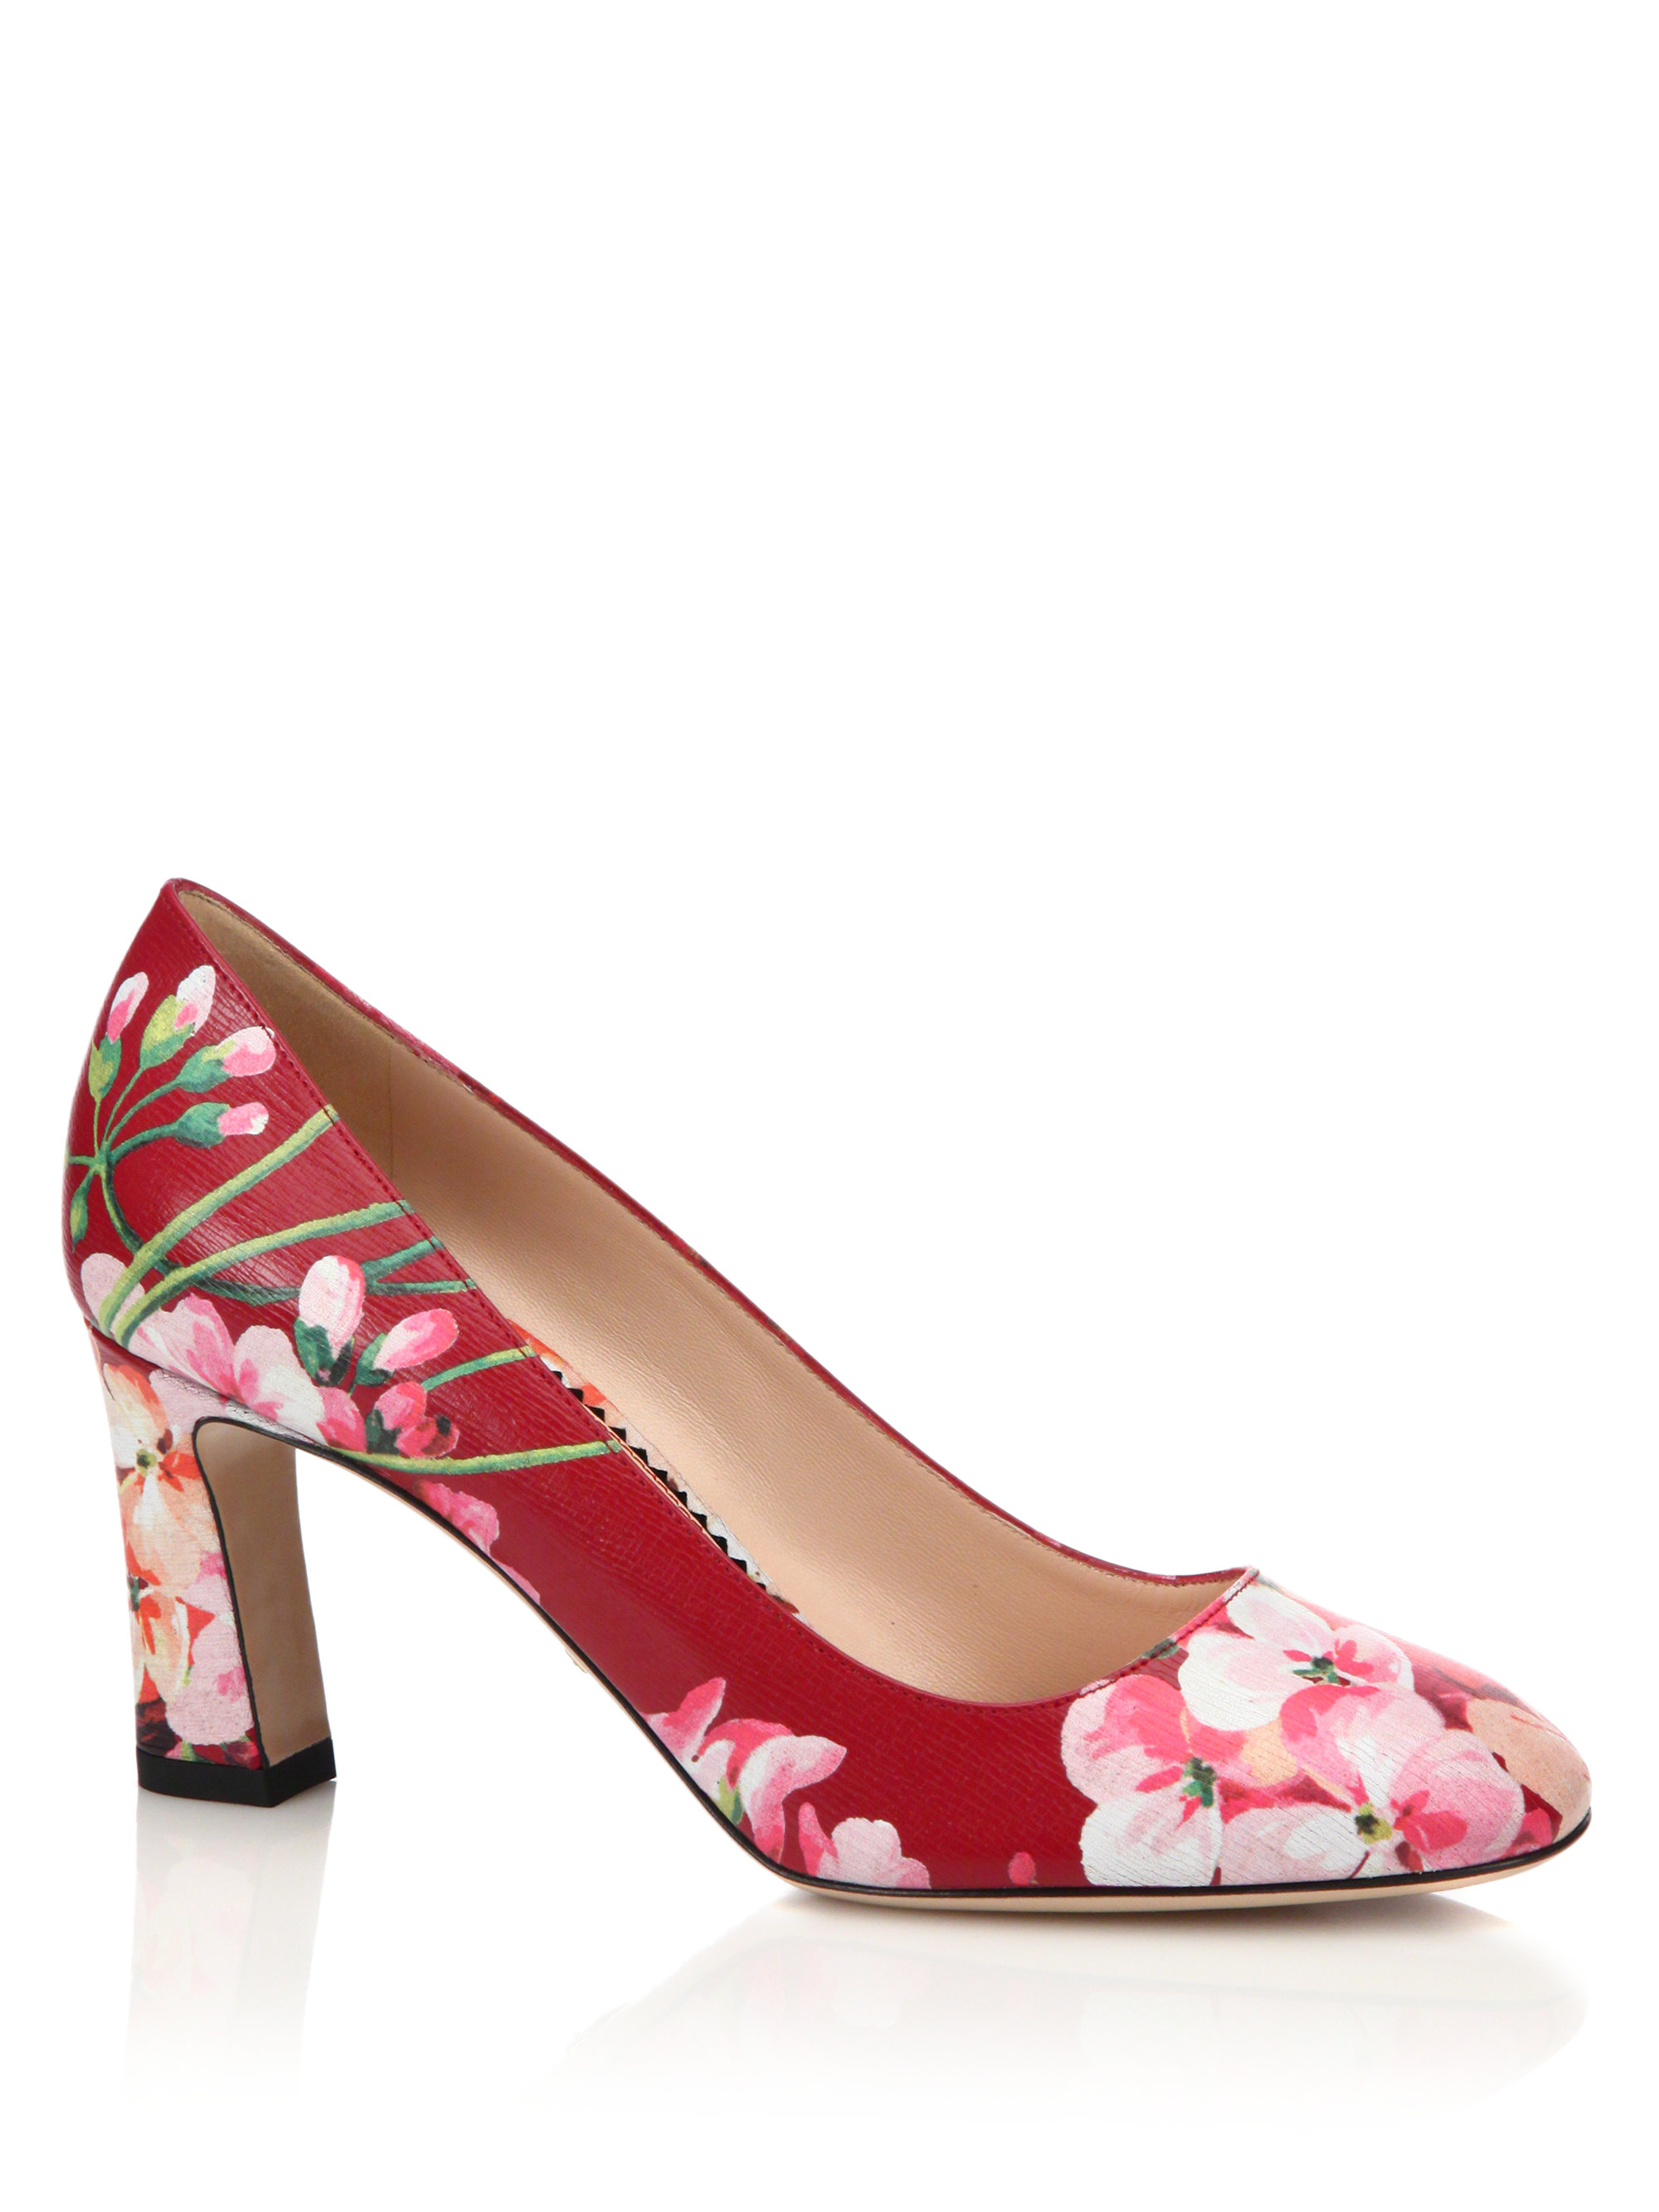 555992b5e87 Lyst - Gucci Marine Floral Leather Pumps in Pink